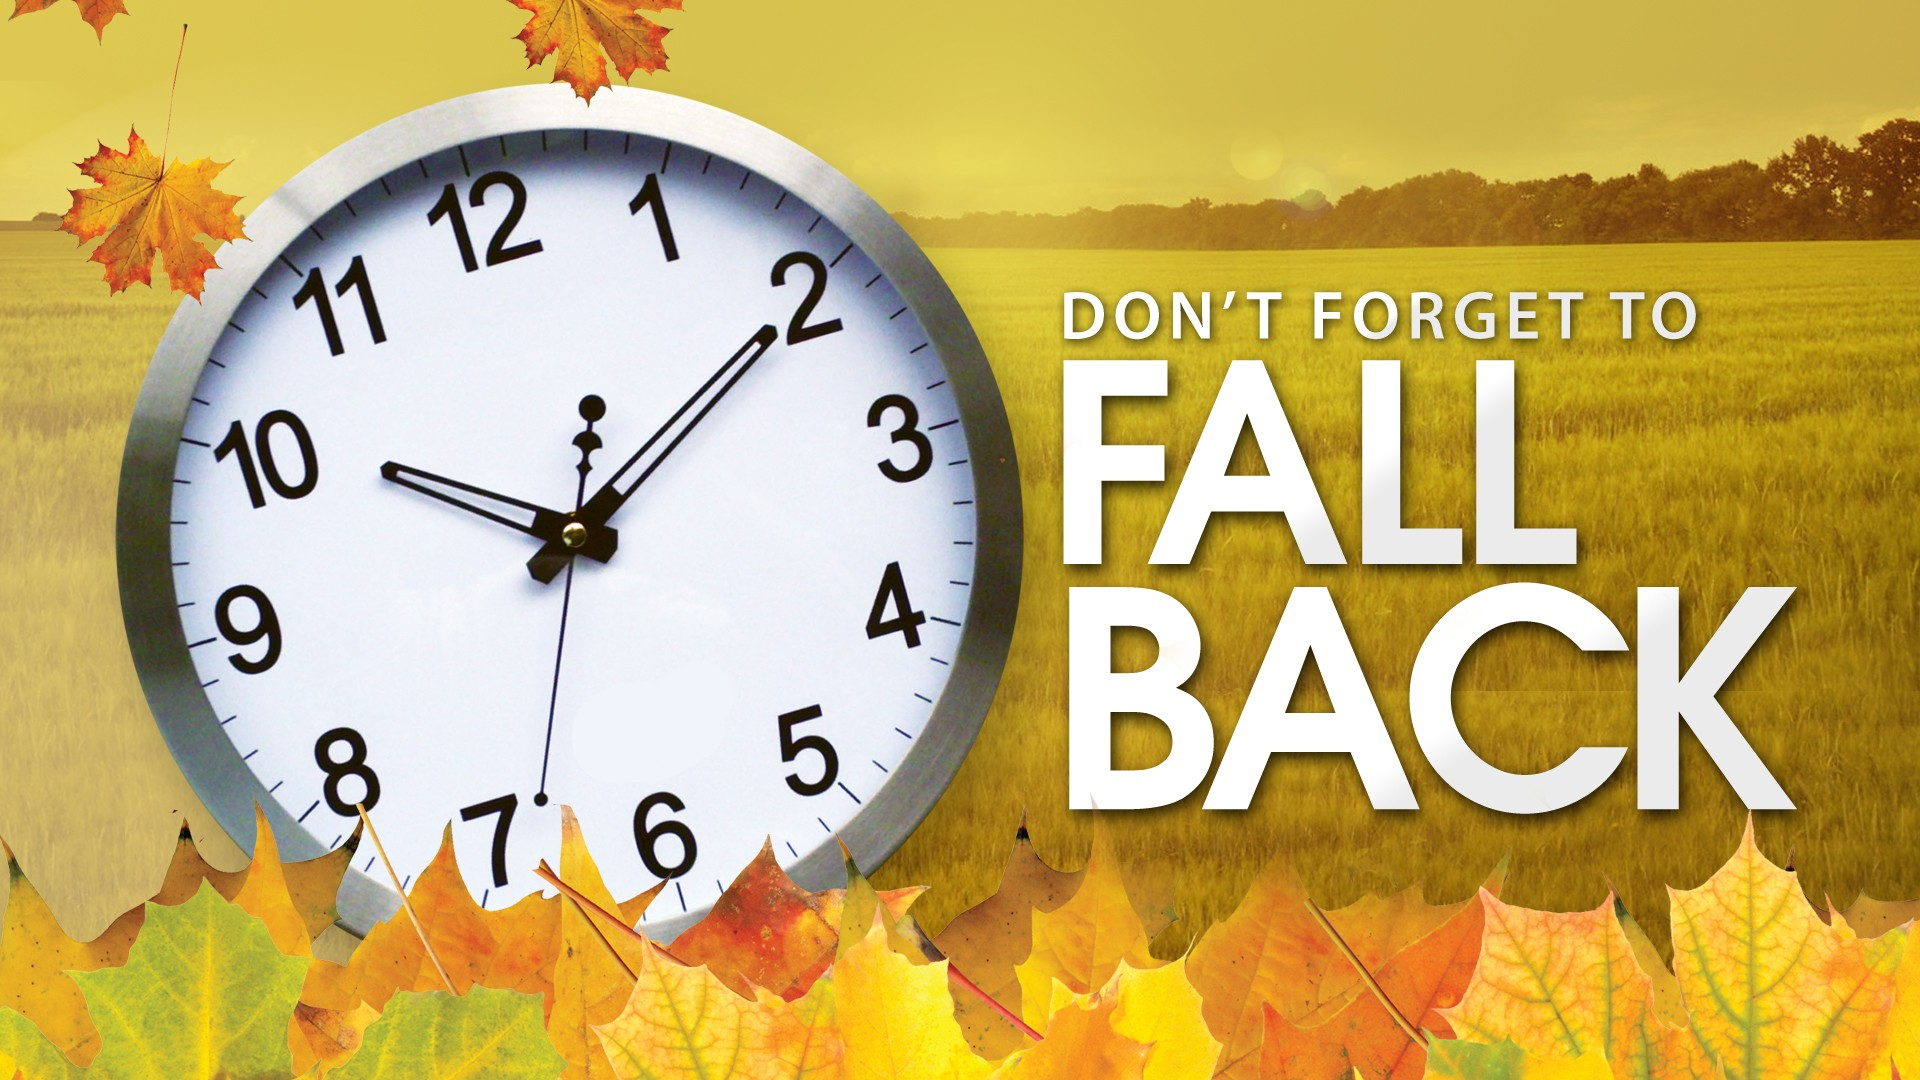 14 cliparts for free. Download Daylight savings clipart november and.